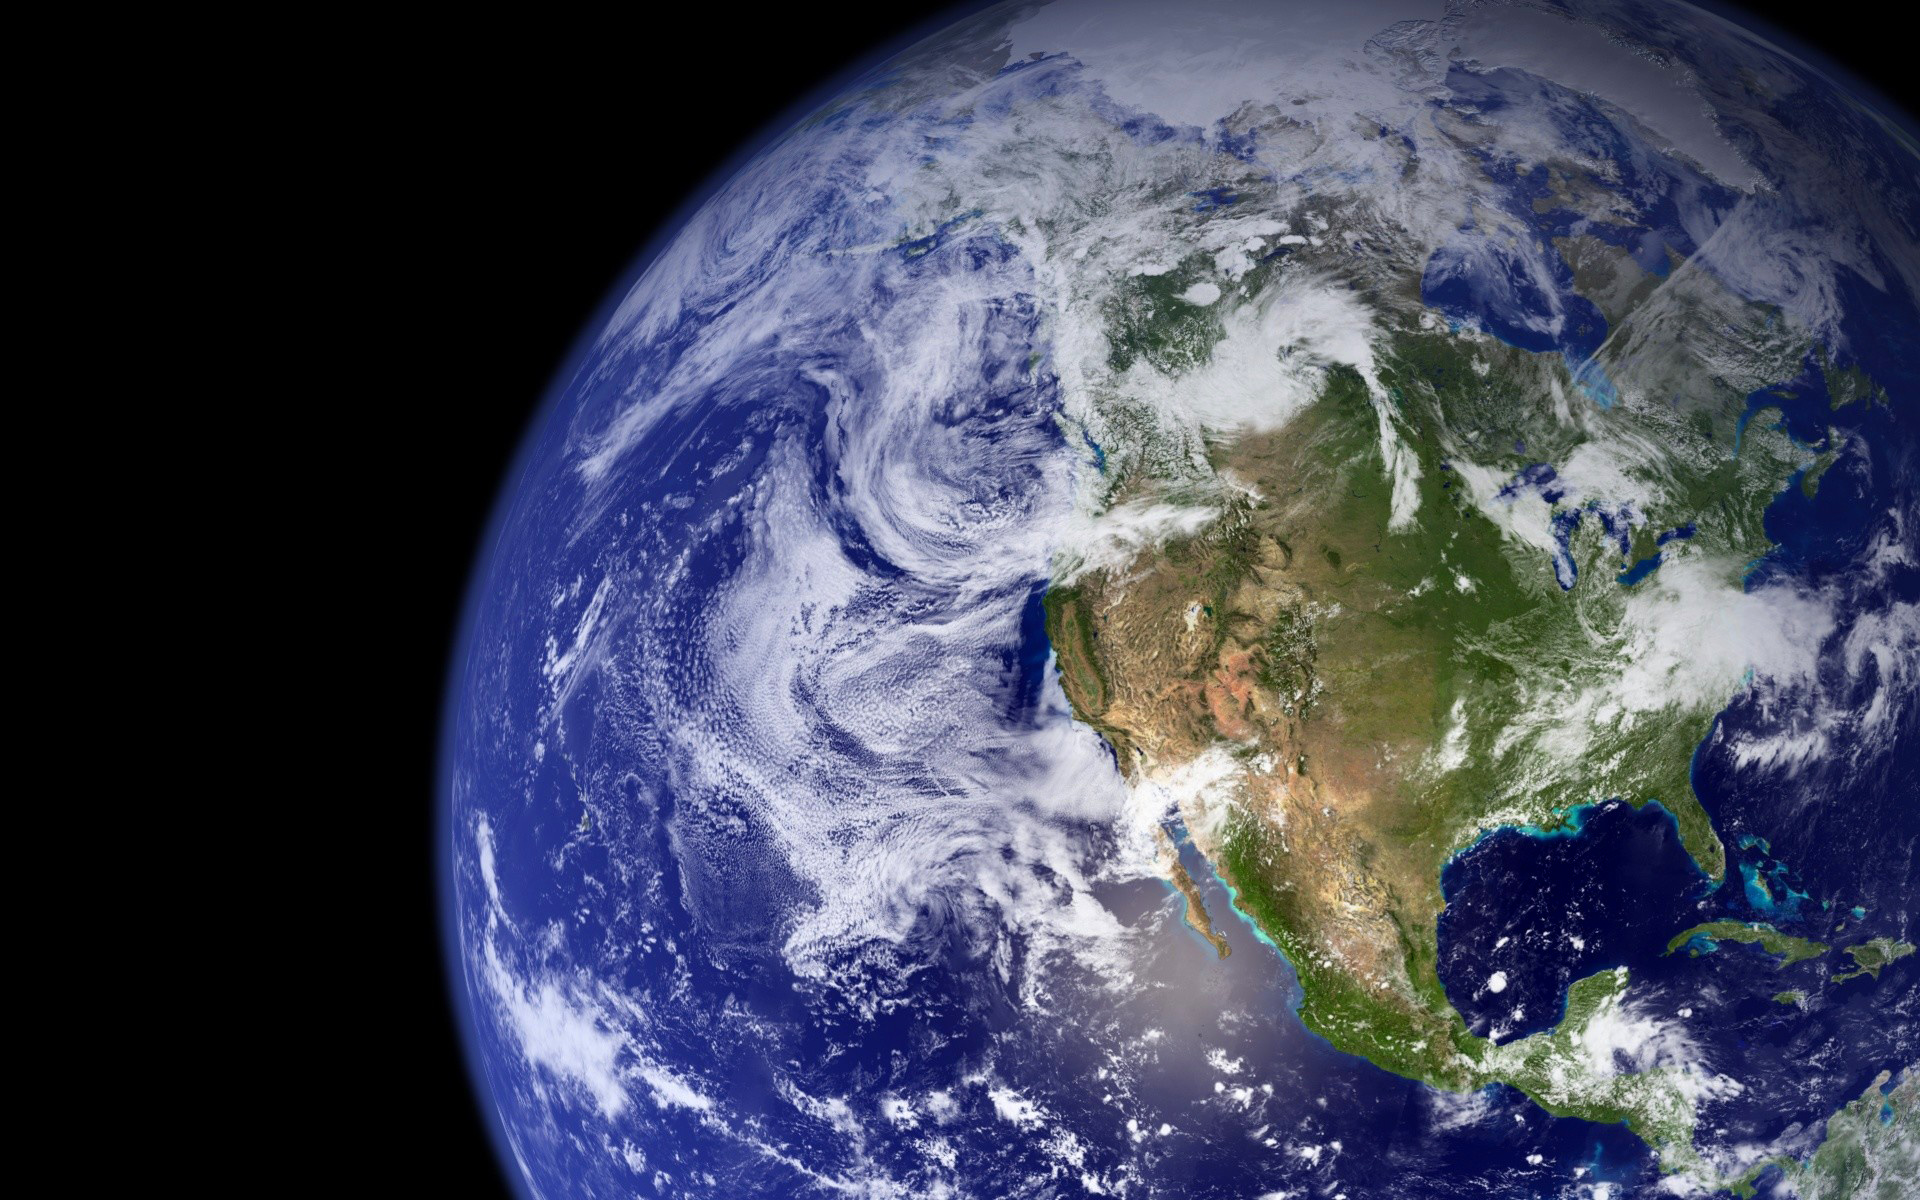 earth from space HD Wallpaper   Space Planets 123260 1920x1200